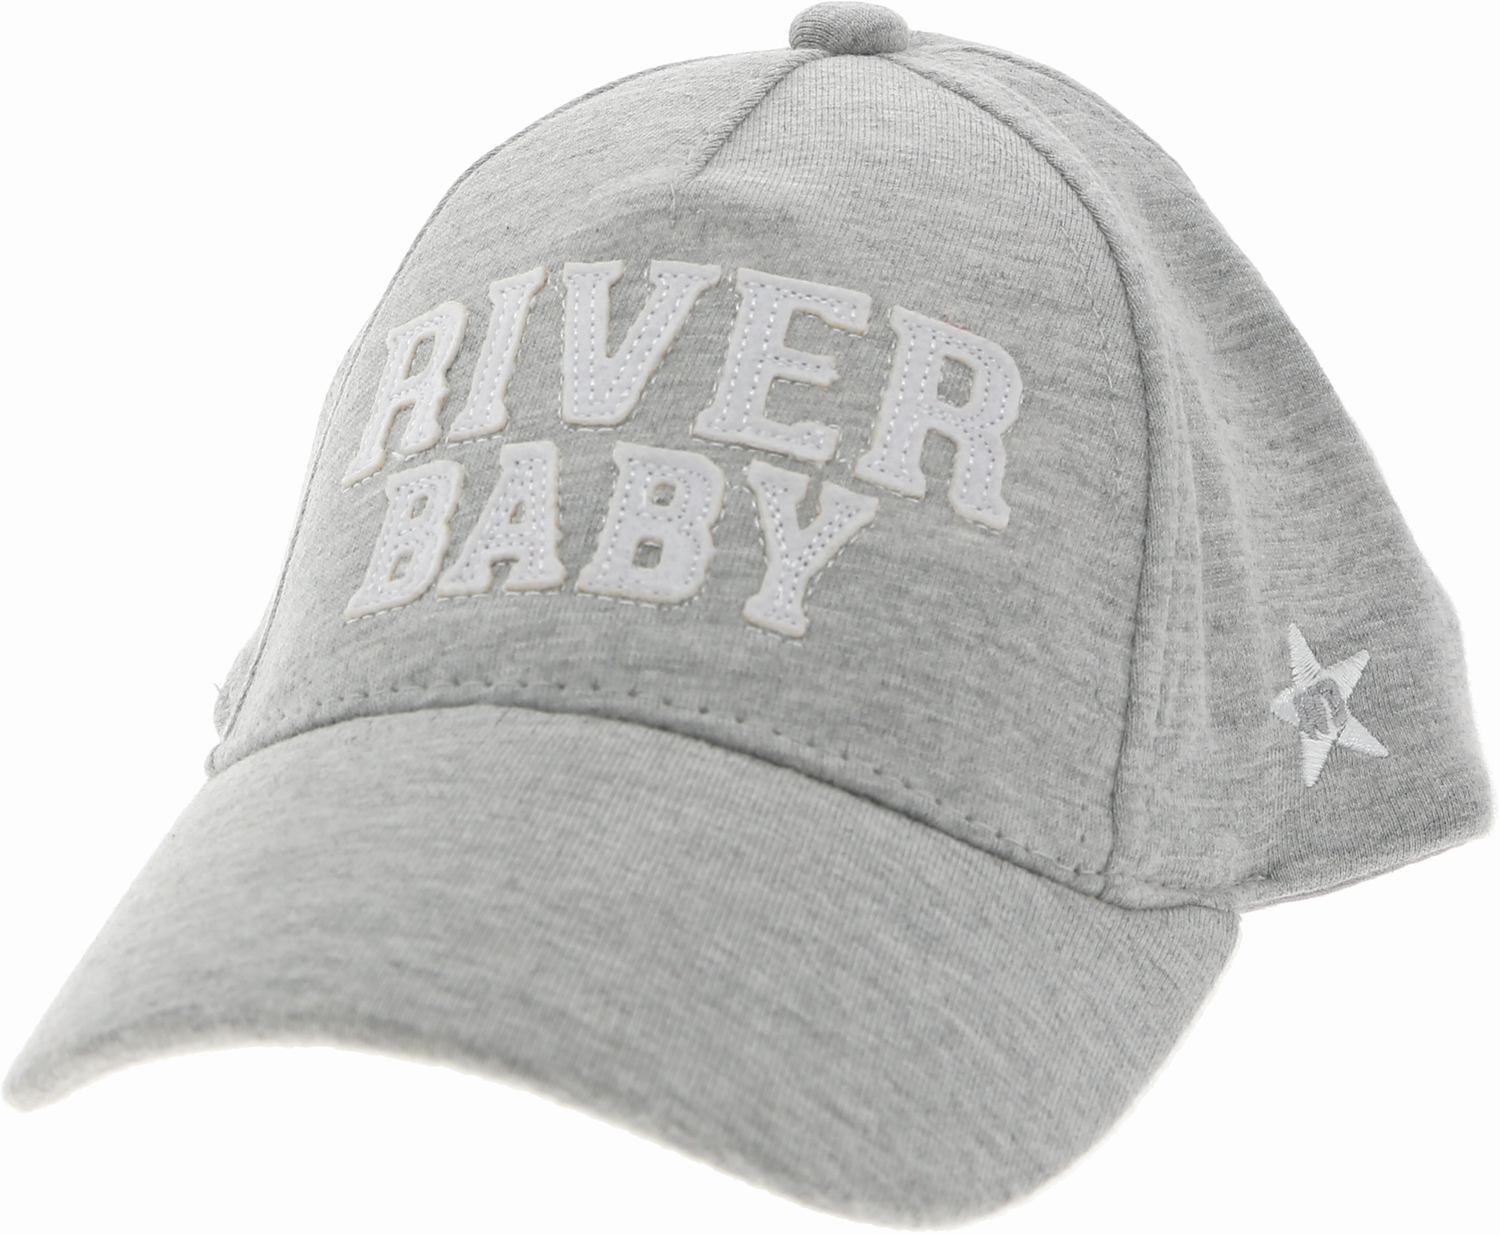 River Baby by We Baby - River Baby - Adjustable Toddler Hat (0-12 Months)